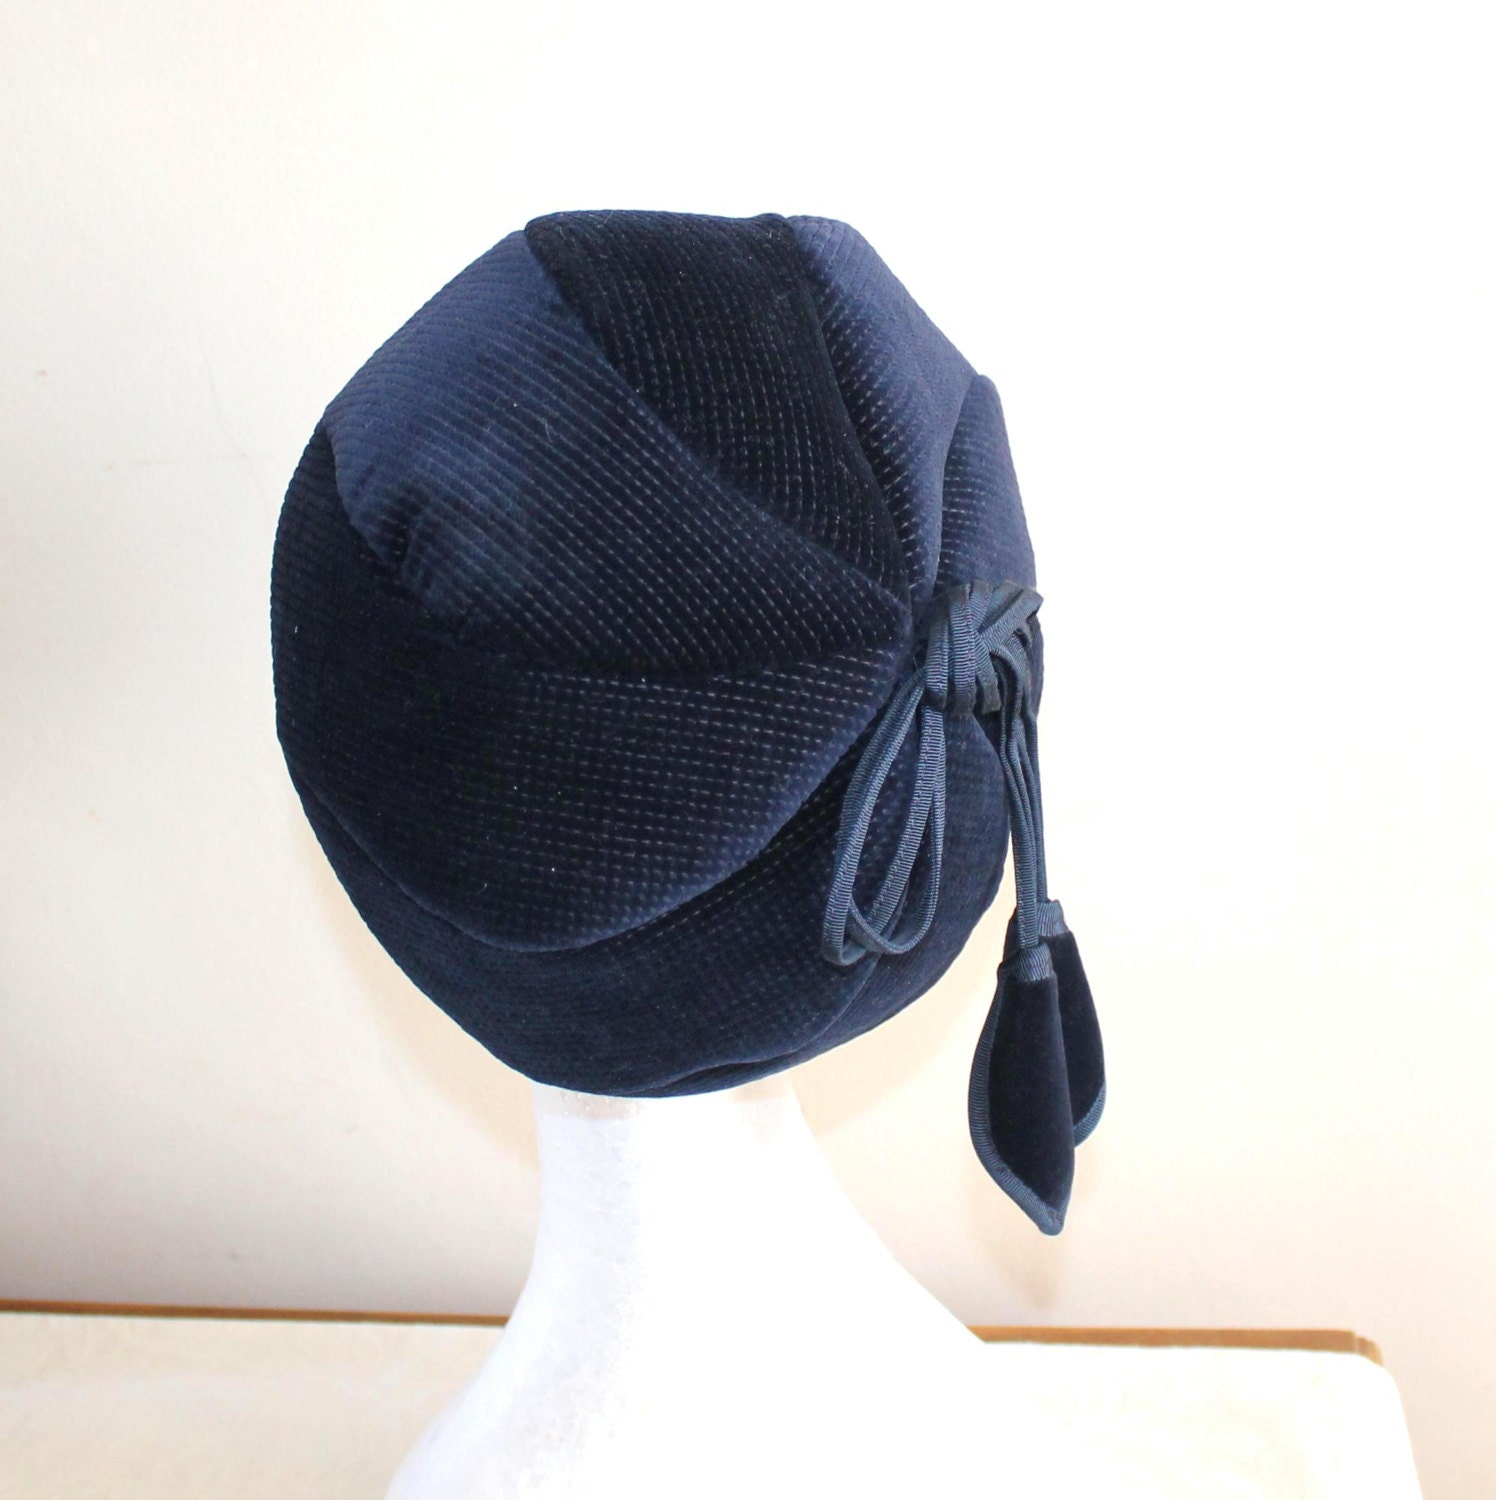 vintage womens navy kangol hat with tassels